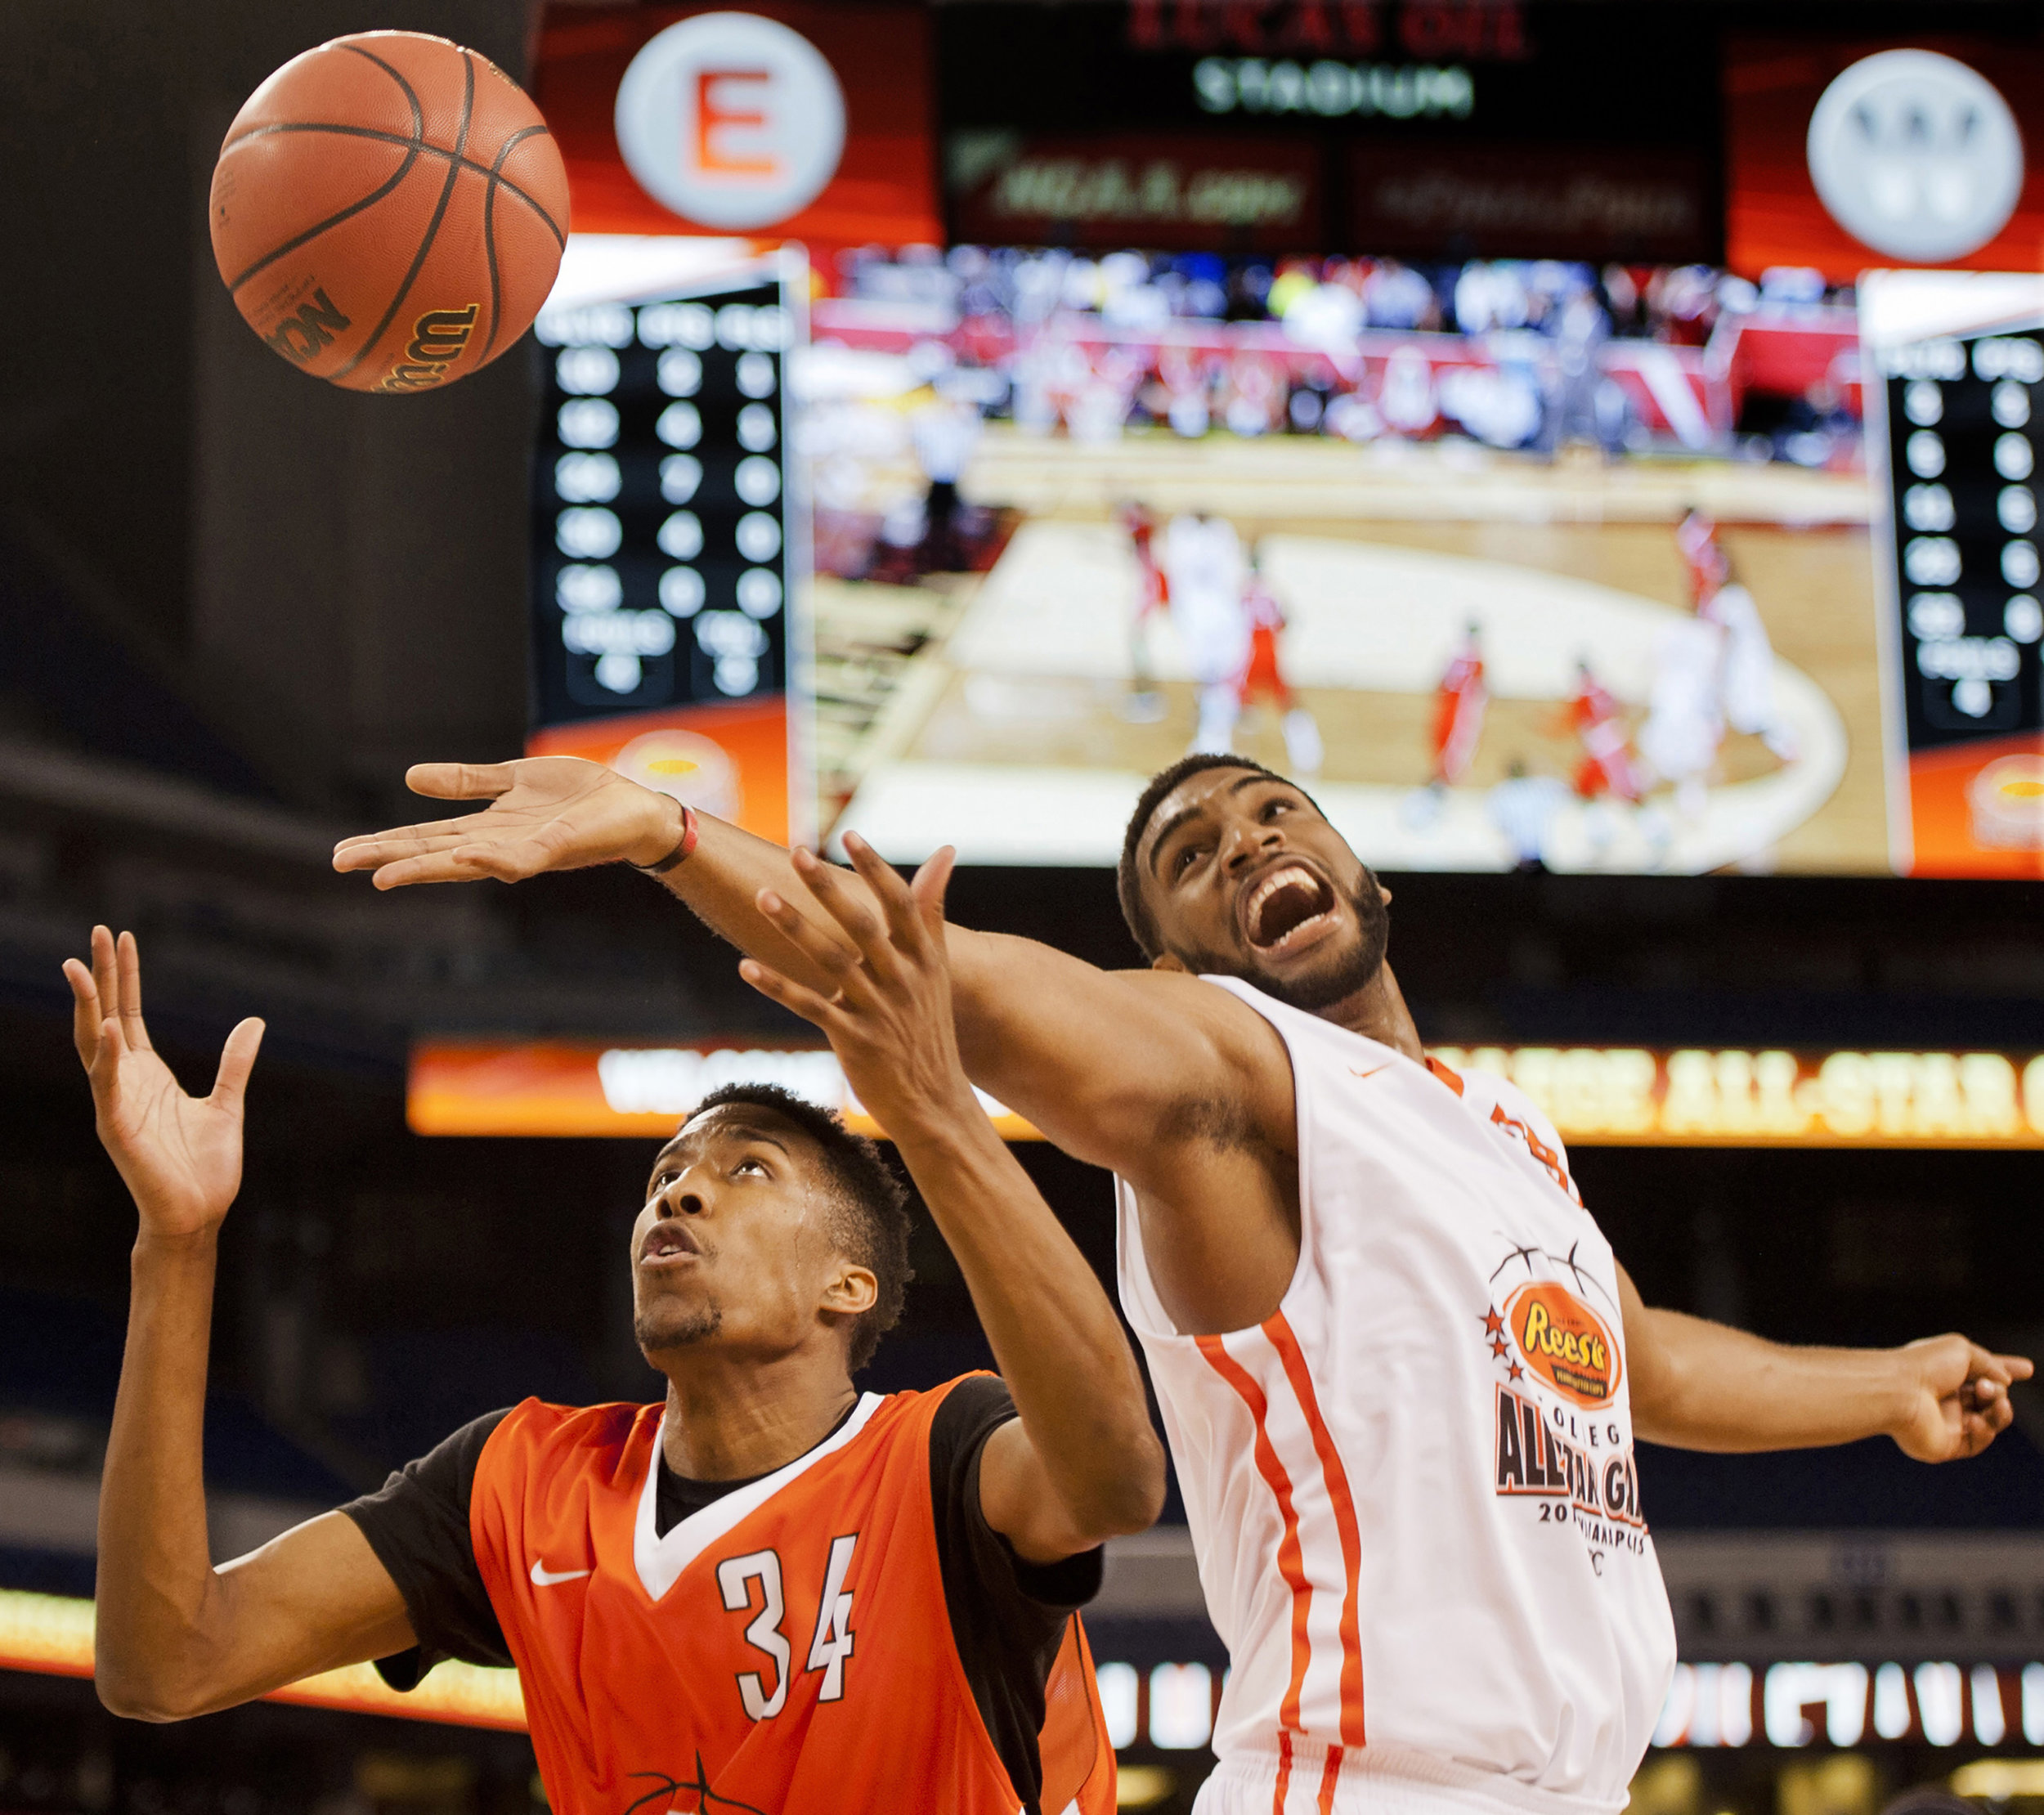 Alan Williams, a center from the University of California, Santa Barbara, tries to get a rebound over Kameron Woods, a forward from Butler University, at the Reese's College All-Star Game on April 3, 2015, at Lucas Oil Stadium. Woods led his team with 14 rebounds in the competition.